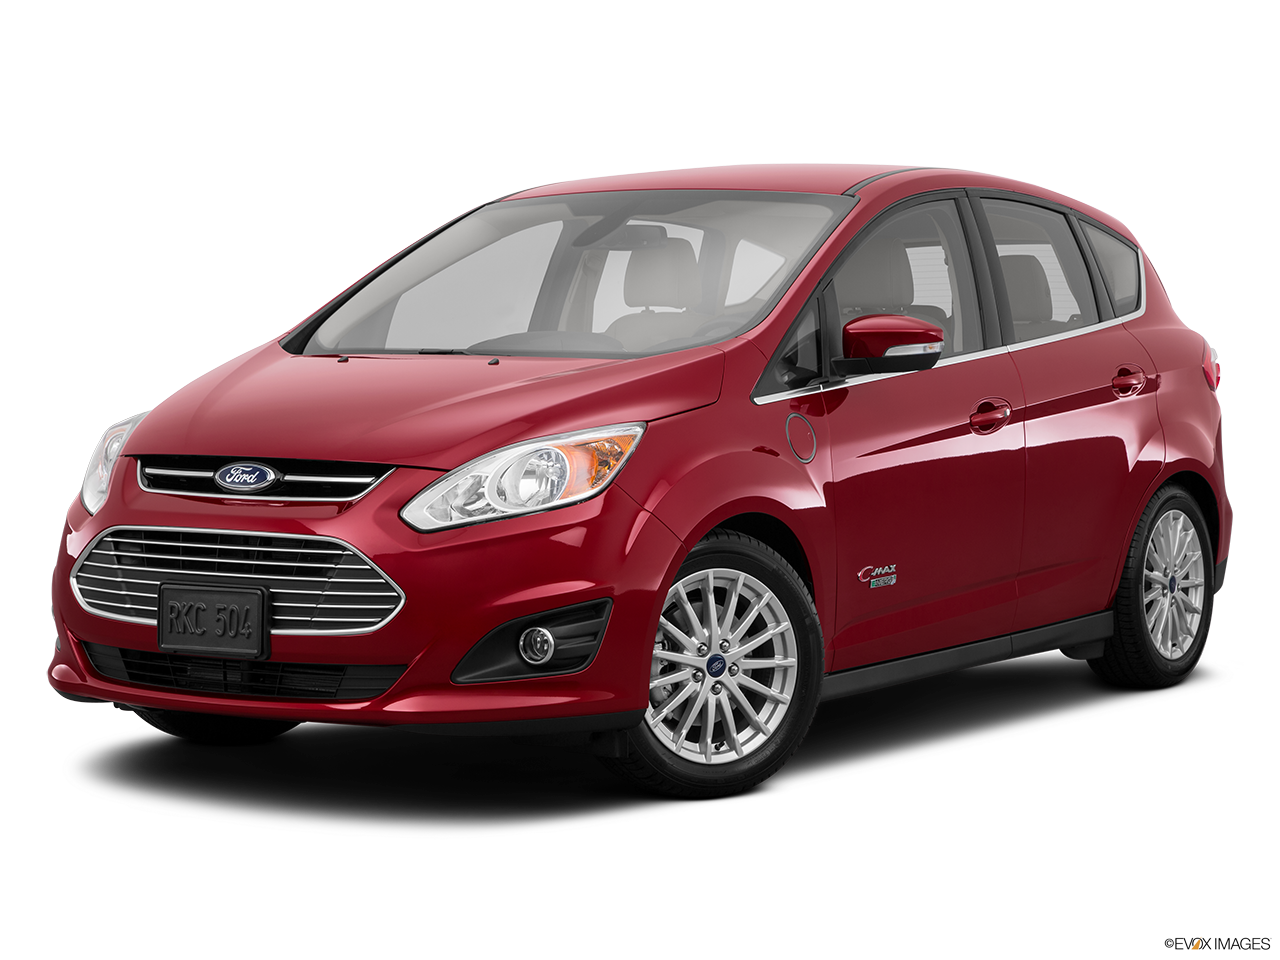 Test Drive A 2015 Ford C-Max at Doenges Ford in Tulsa